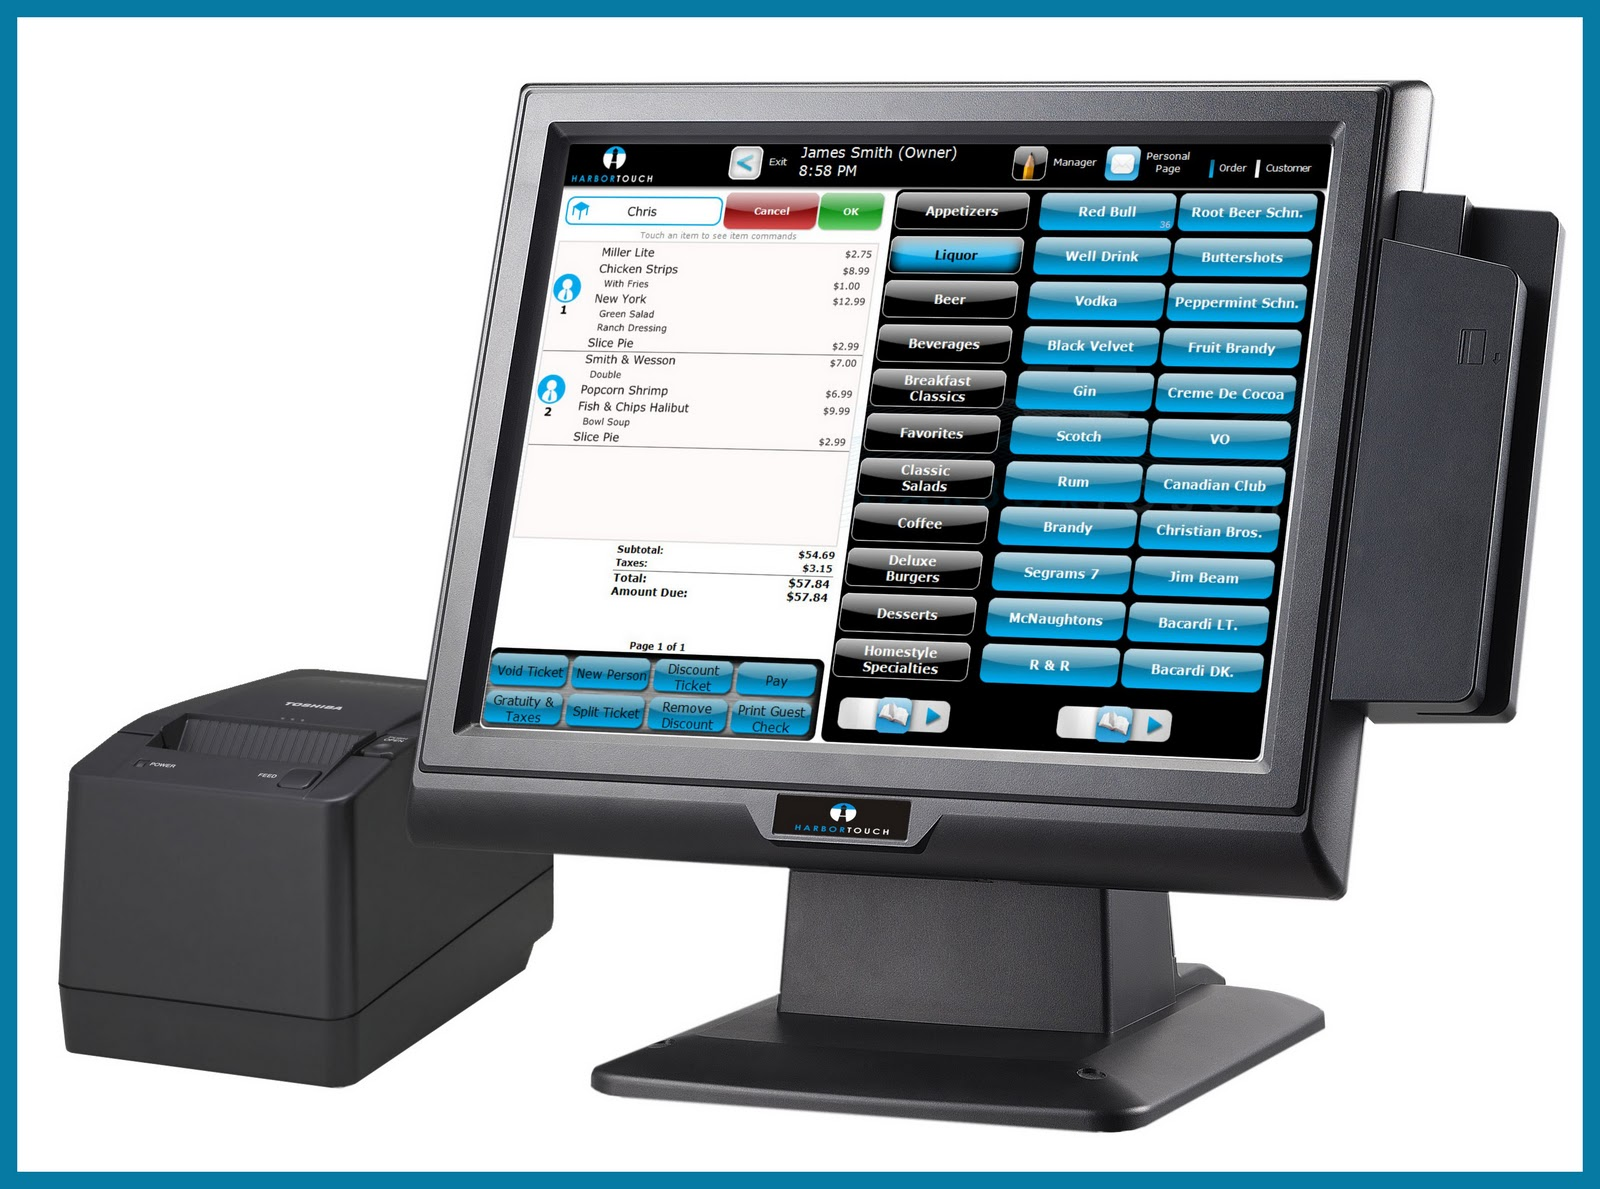 POS adoption in restaurant industry